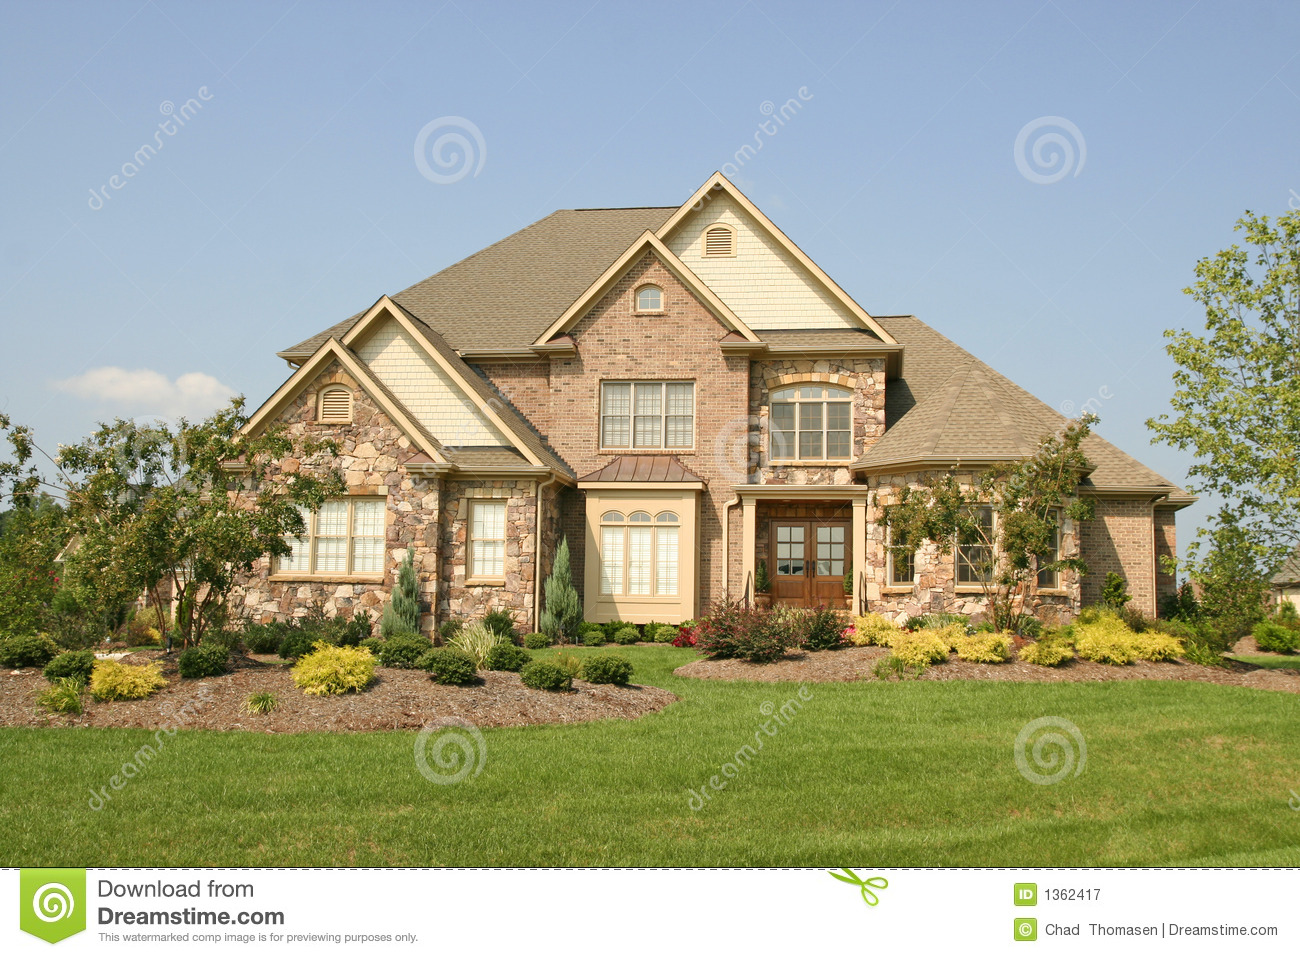 Large House Royalty Free Stock Photography Image 1362417